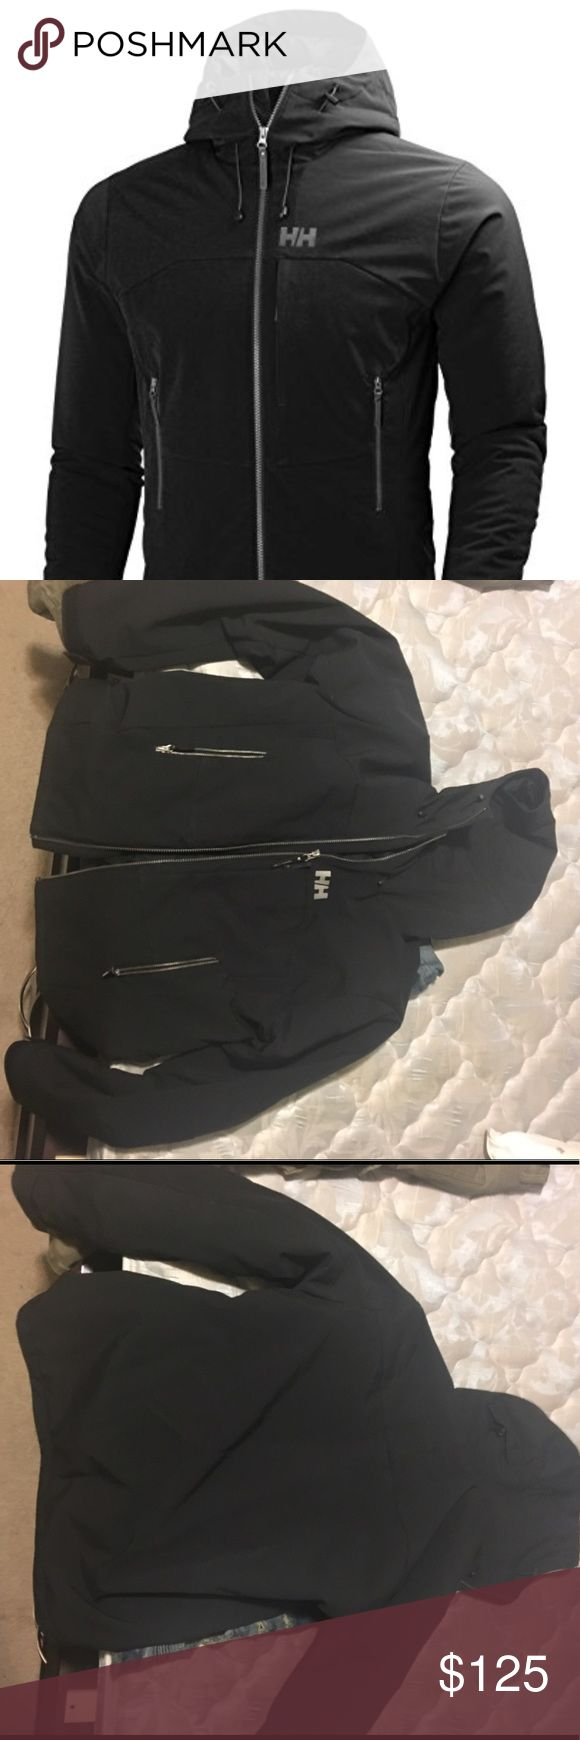 Helly Hansen Paramount Insulated Jacket Sz L Only worn a couple times could pass as brand new! Retail was $200 only looking for $125 Helly Hansen Jackets & Coats